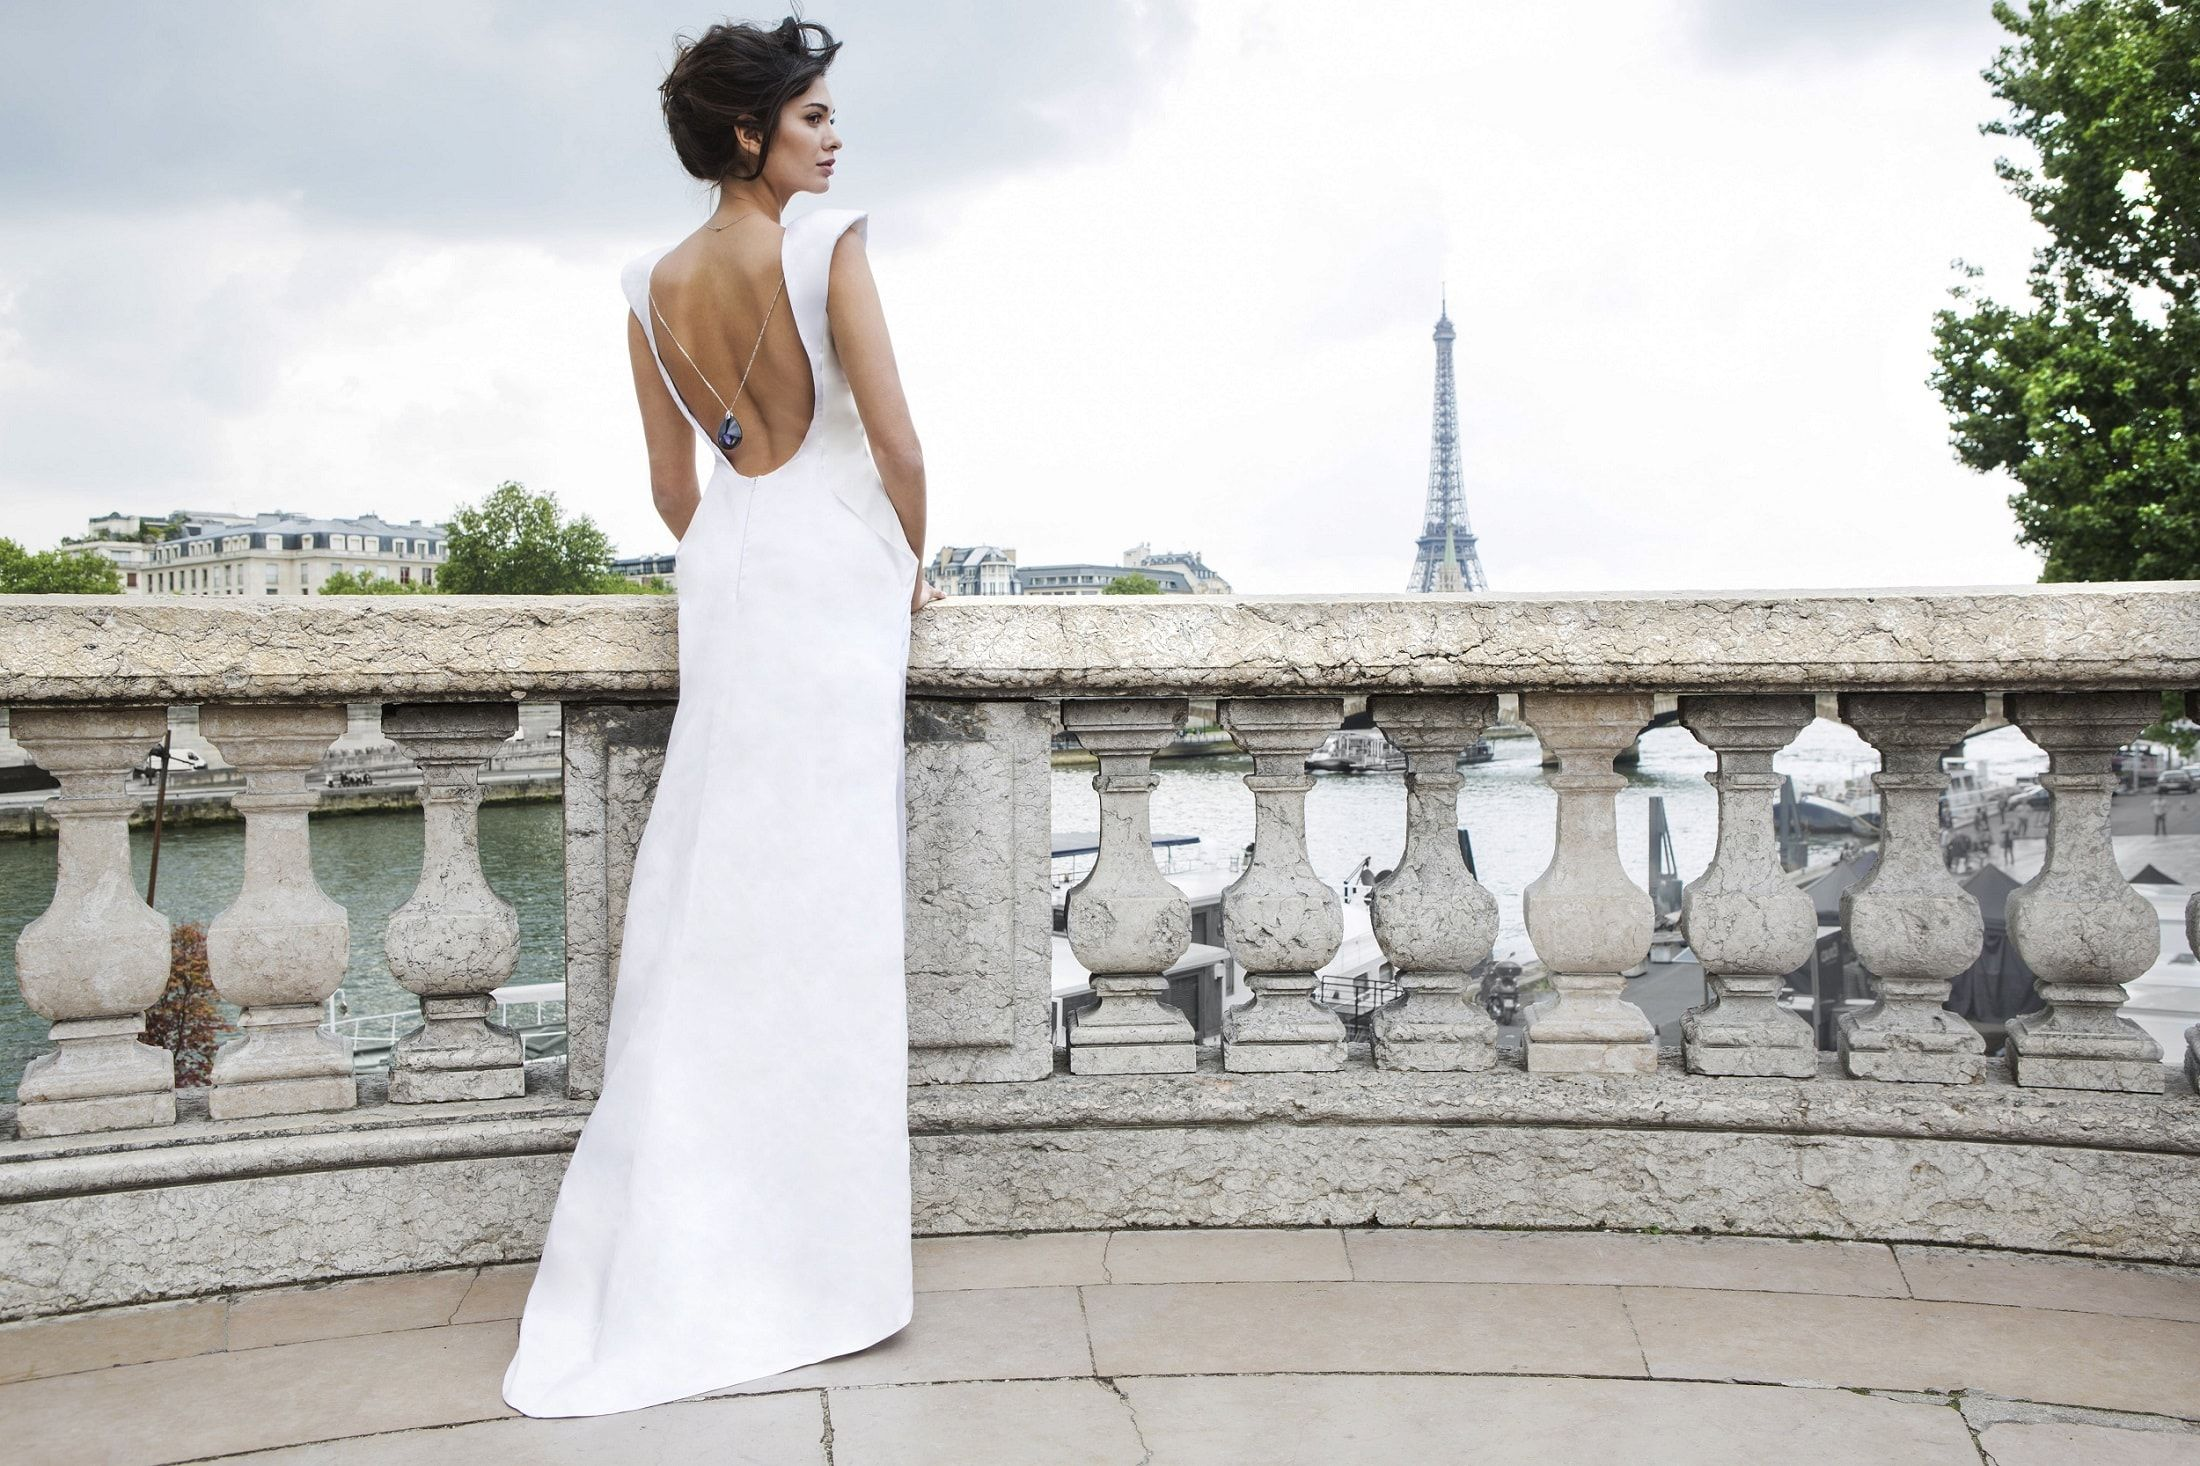 Backless Wedding Dress Miami By Laureen Your Bridal Specialist Wedding Dresses Backless Wedding Dress Miami Wedding Dress [ 1466 x 2200 Pixel ]